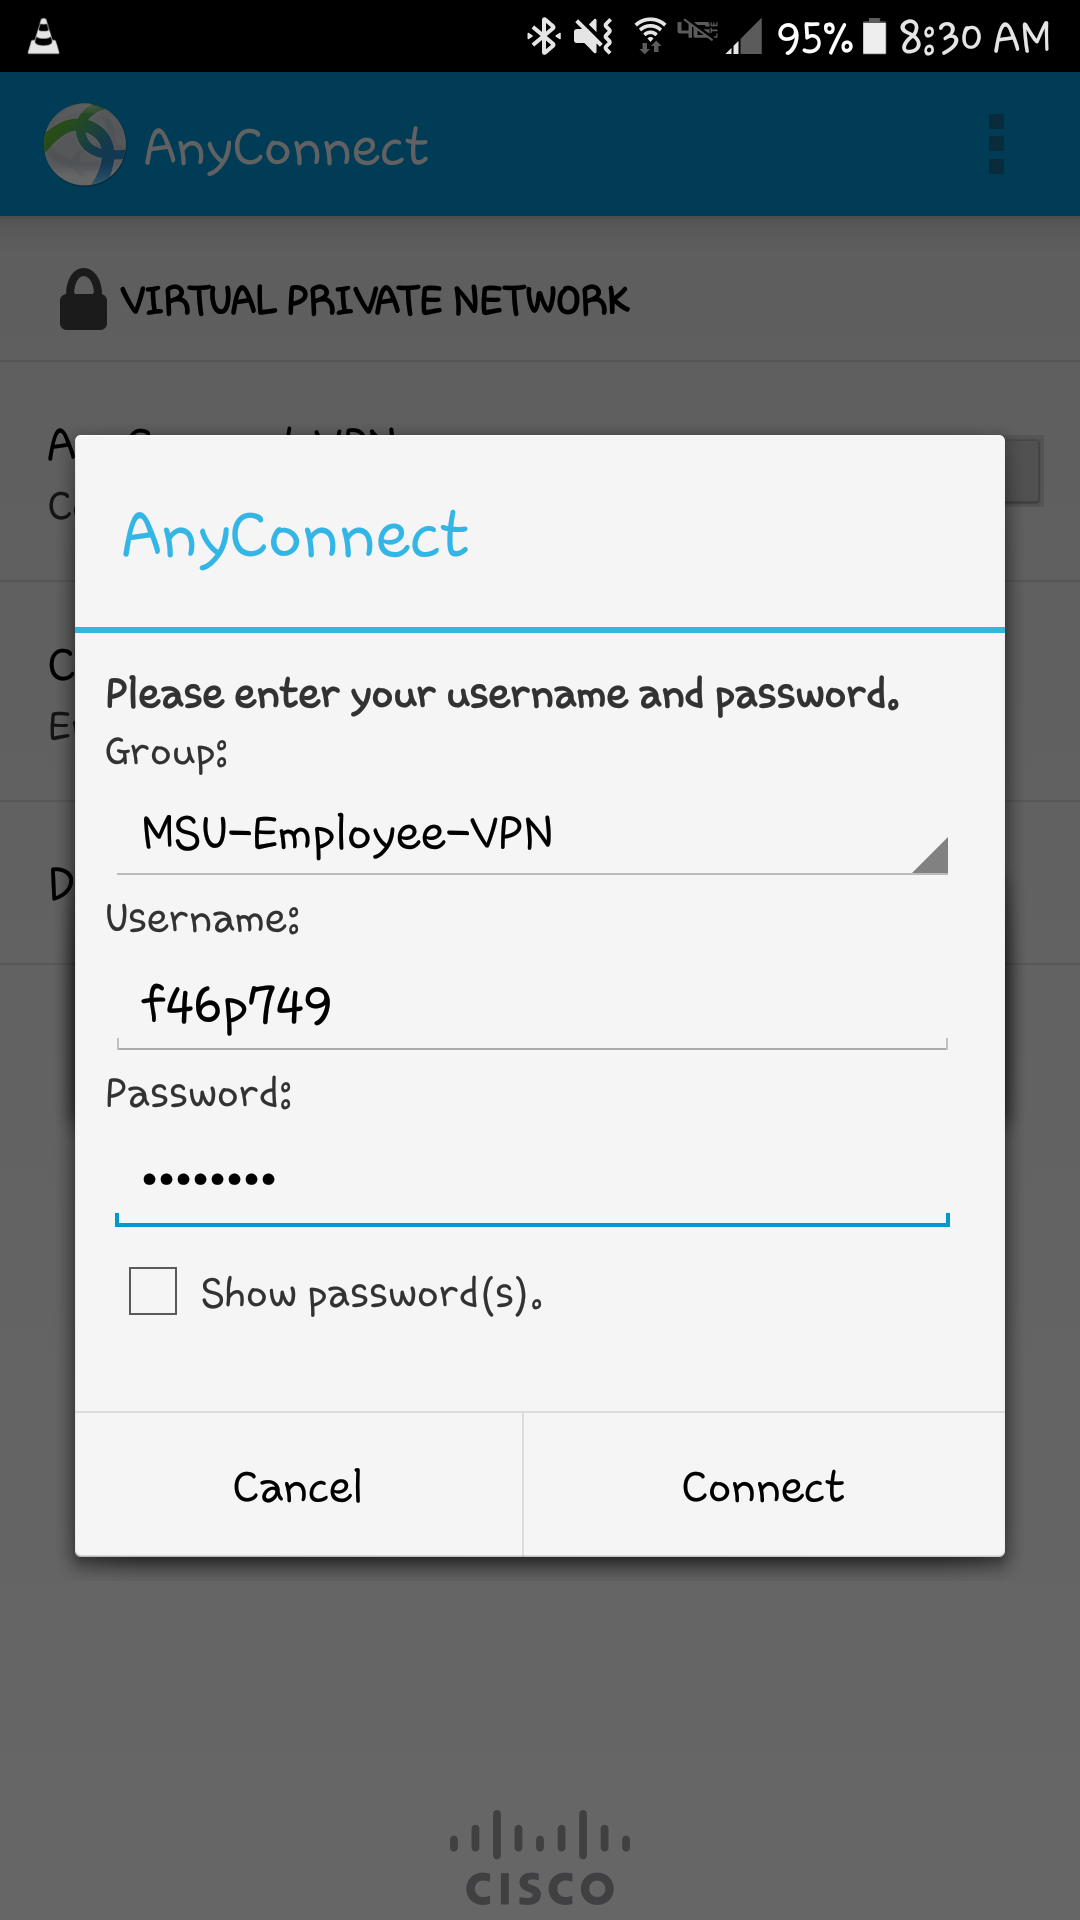 screen shot of Android Anyconnect screen